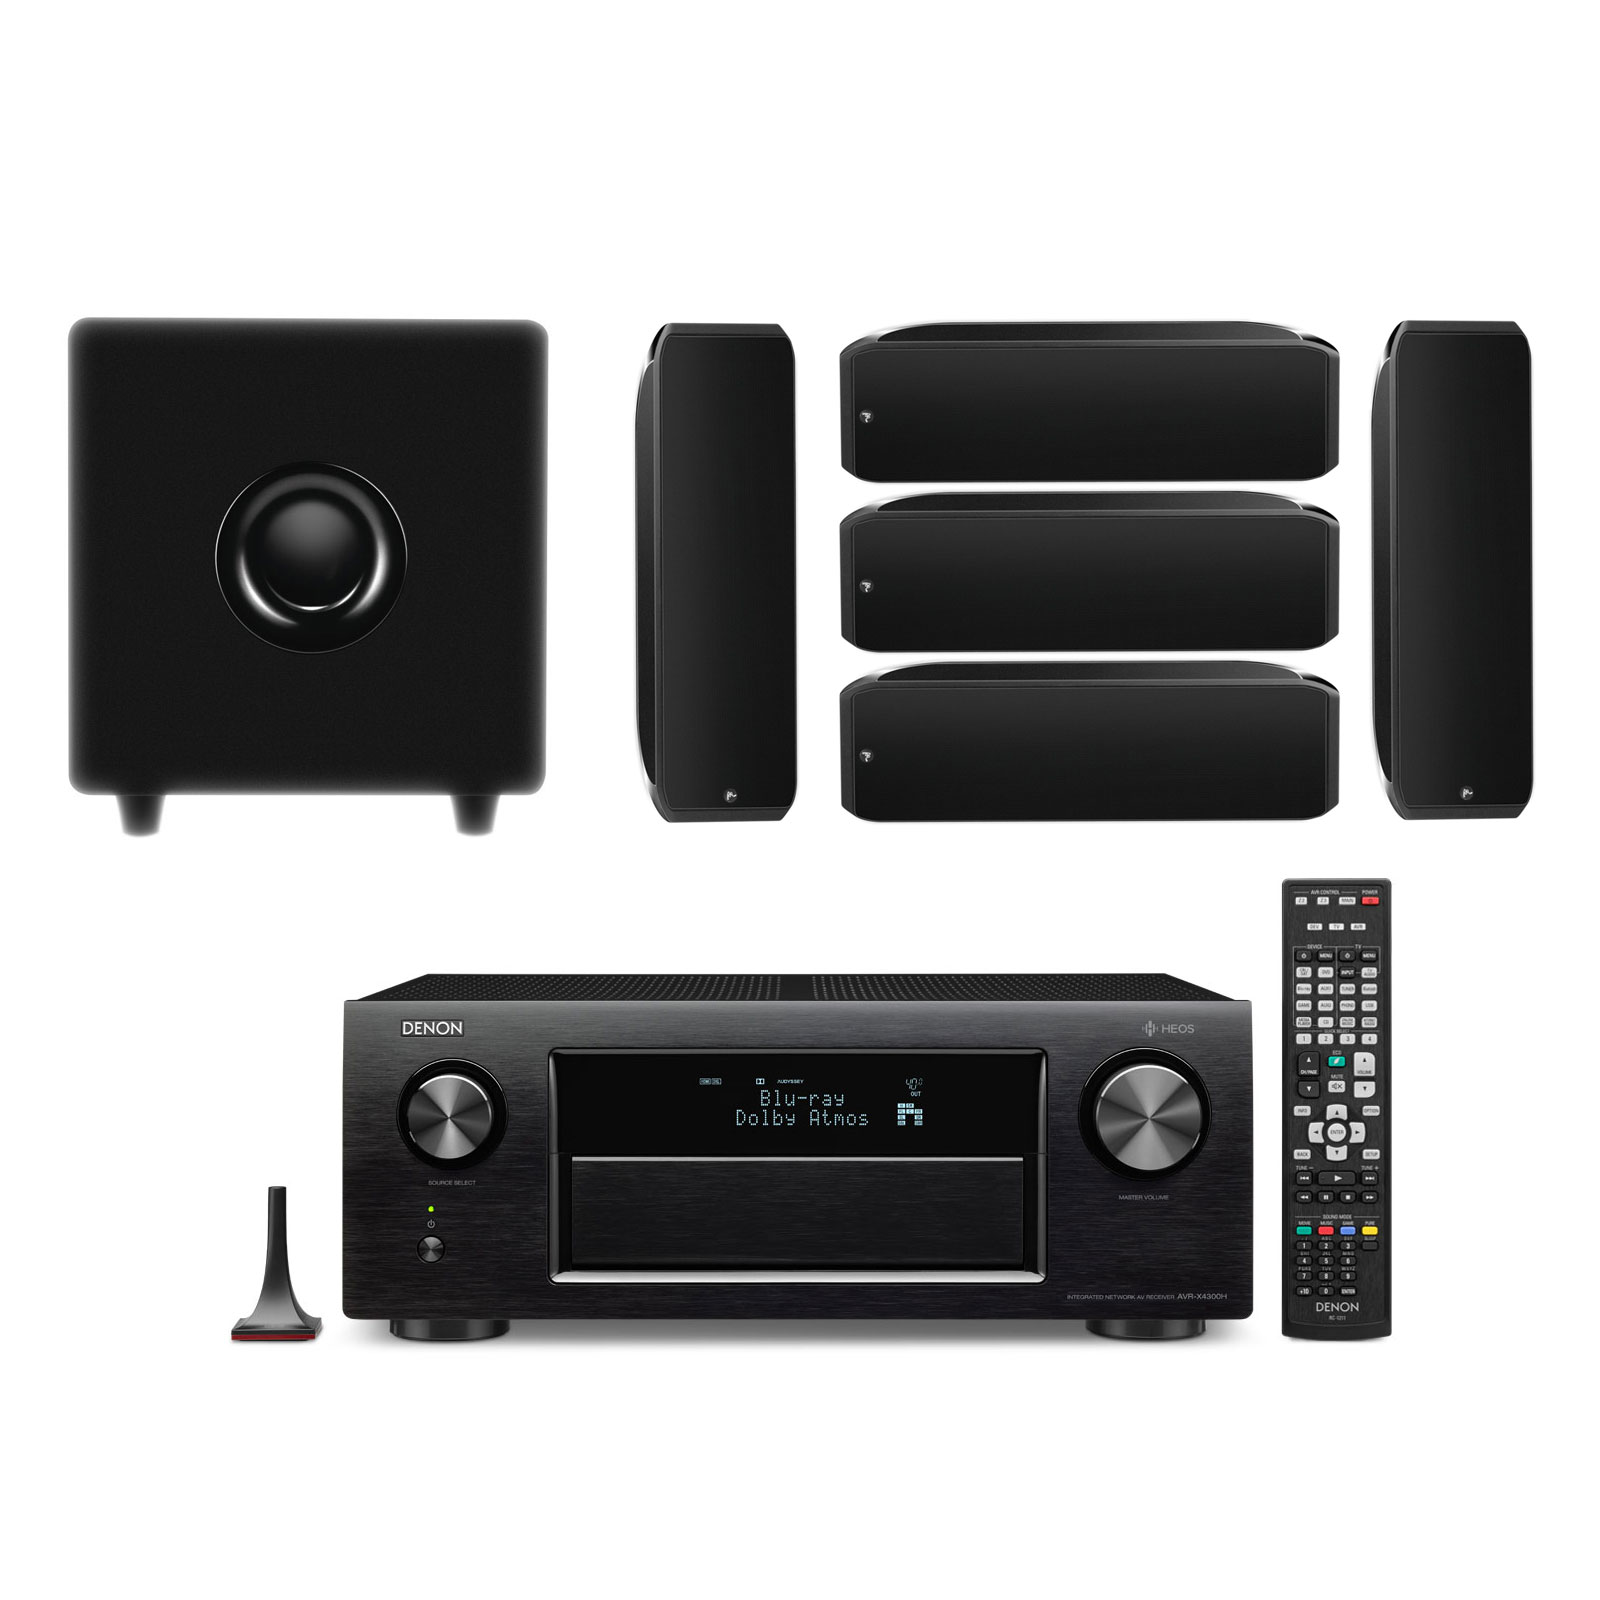 denon avr x4300h noir focal sib cub xl pack ensemble home cin ma denon sur. Black Bedroom Furniture Sets. Home Design Ideas